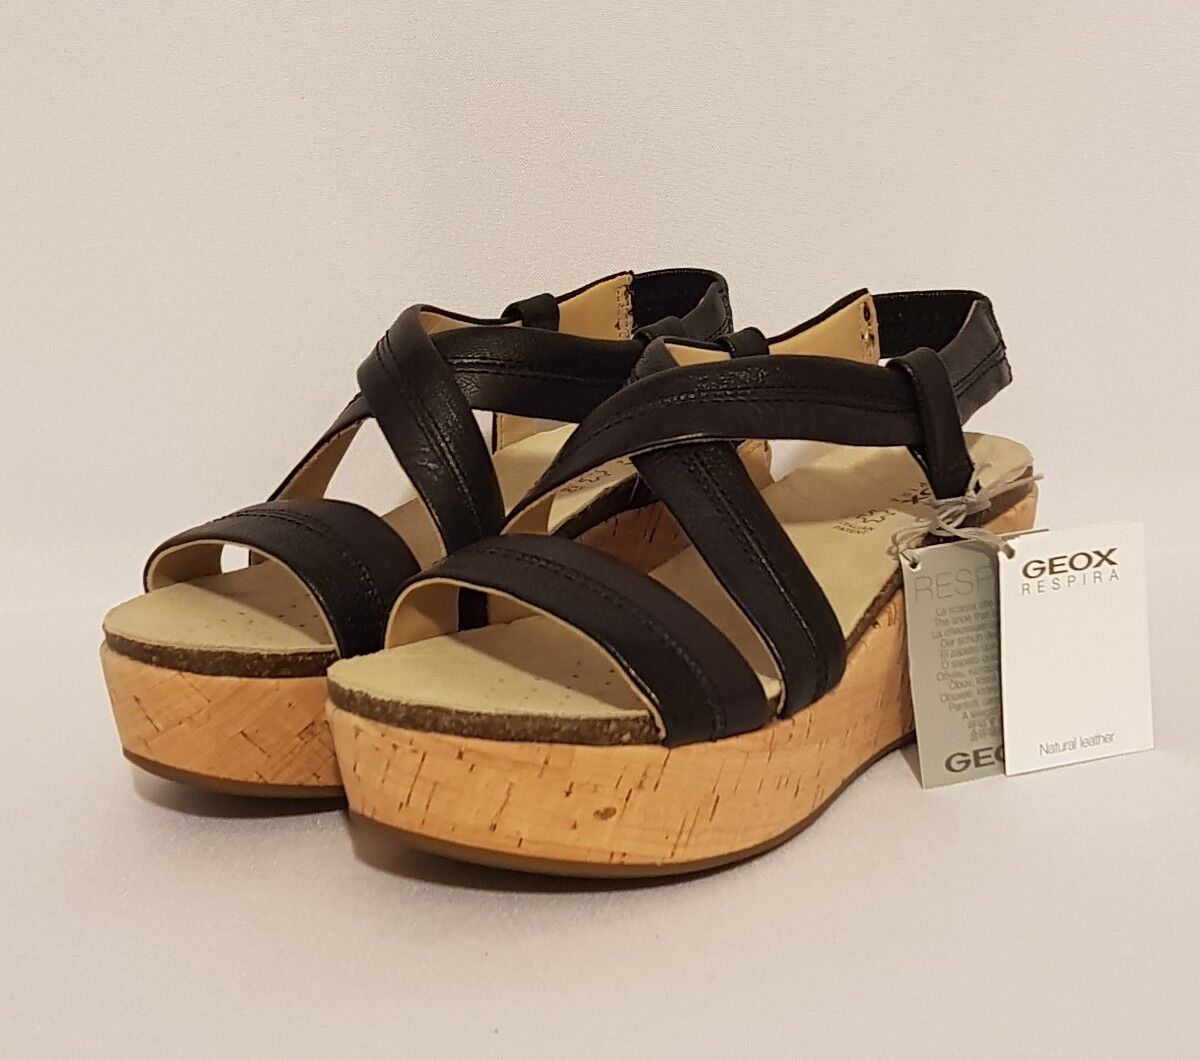 GEOX RESPIRA   BLACK GENUINE LEATHER WEDGE SANDALS SUMMER SUMMER SANDALS Schuhe LADIES bb7155